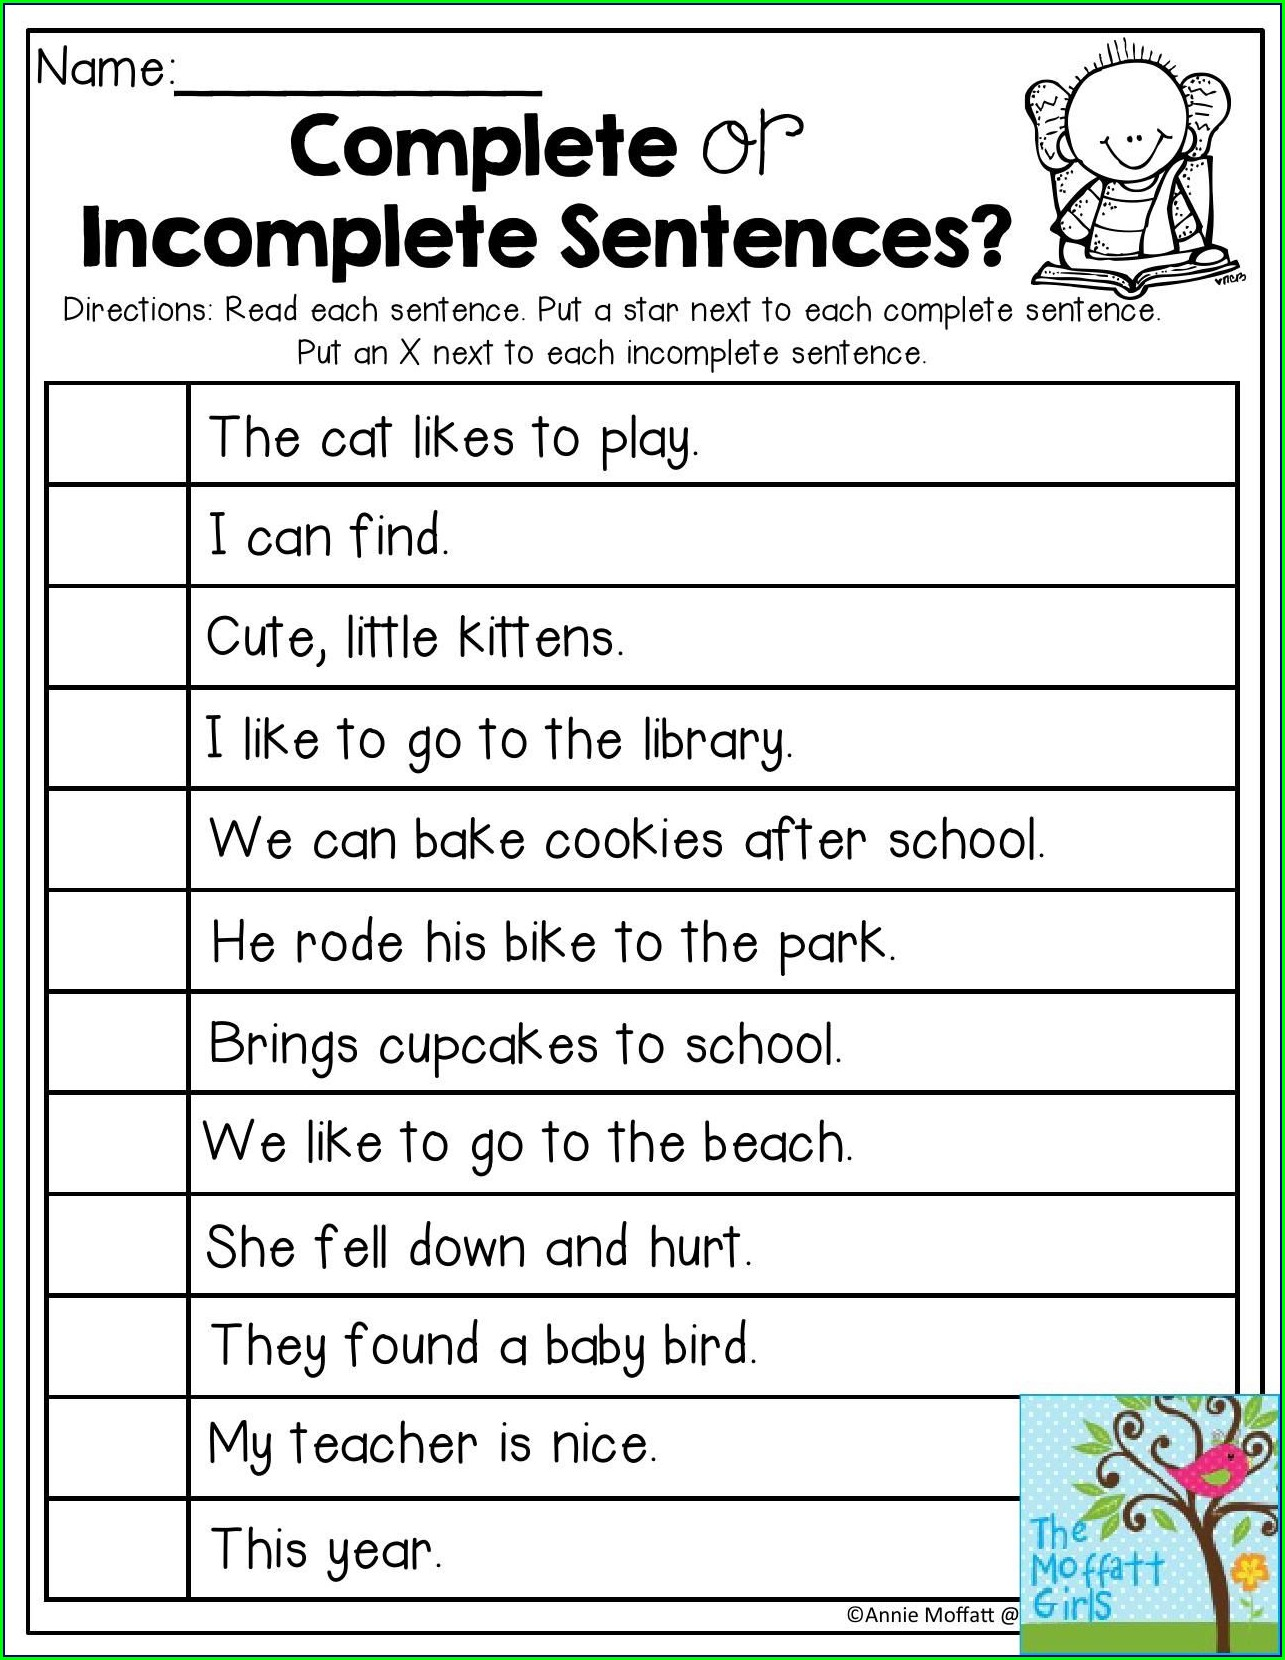 Writing Complete Sentences Worksheets For 1st Grade